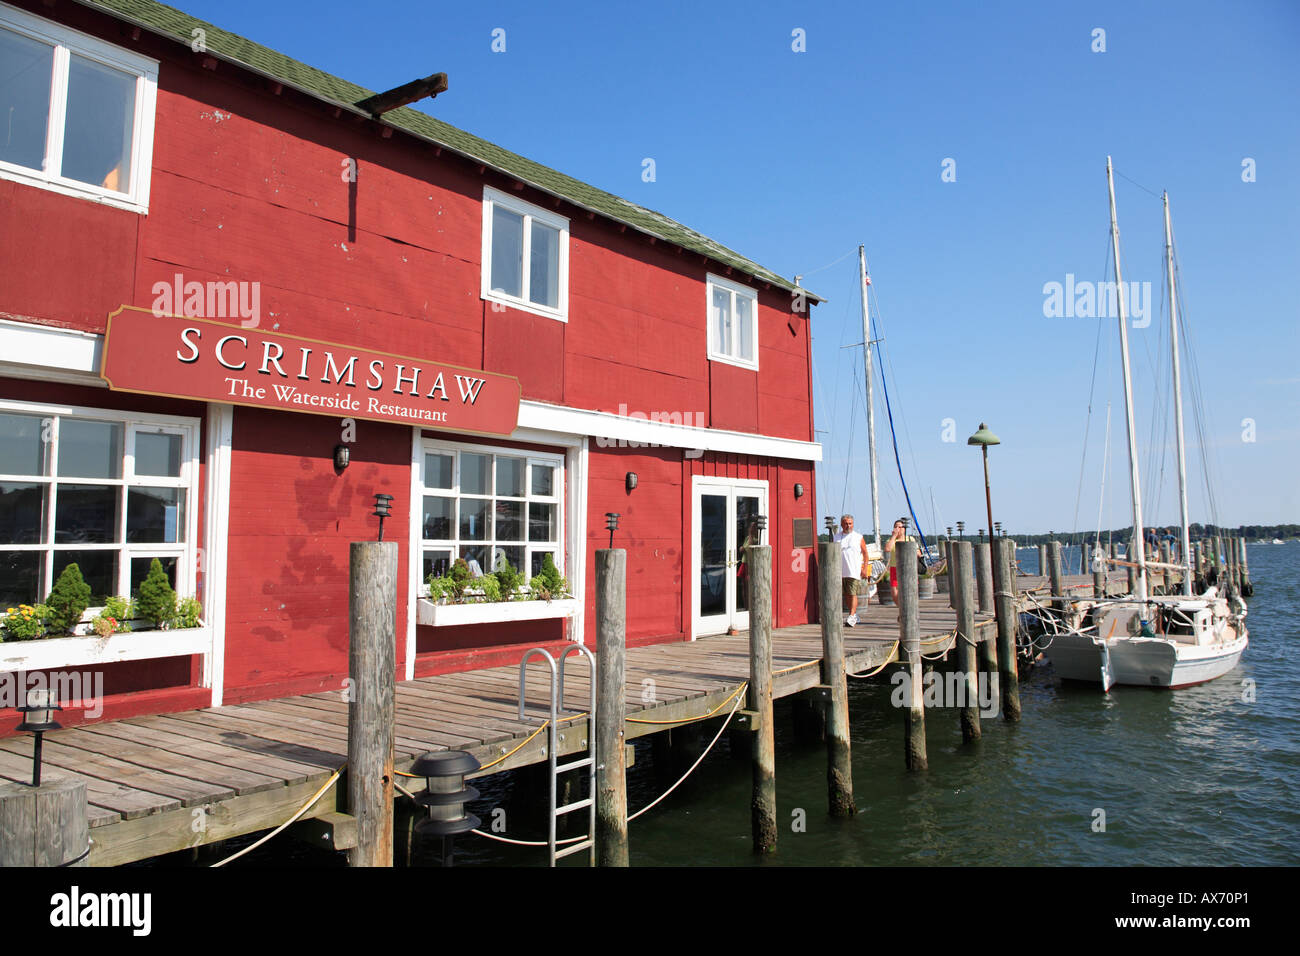 Scrimshaw Restaurant Marina Greenport Long Island Shelter